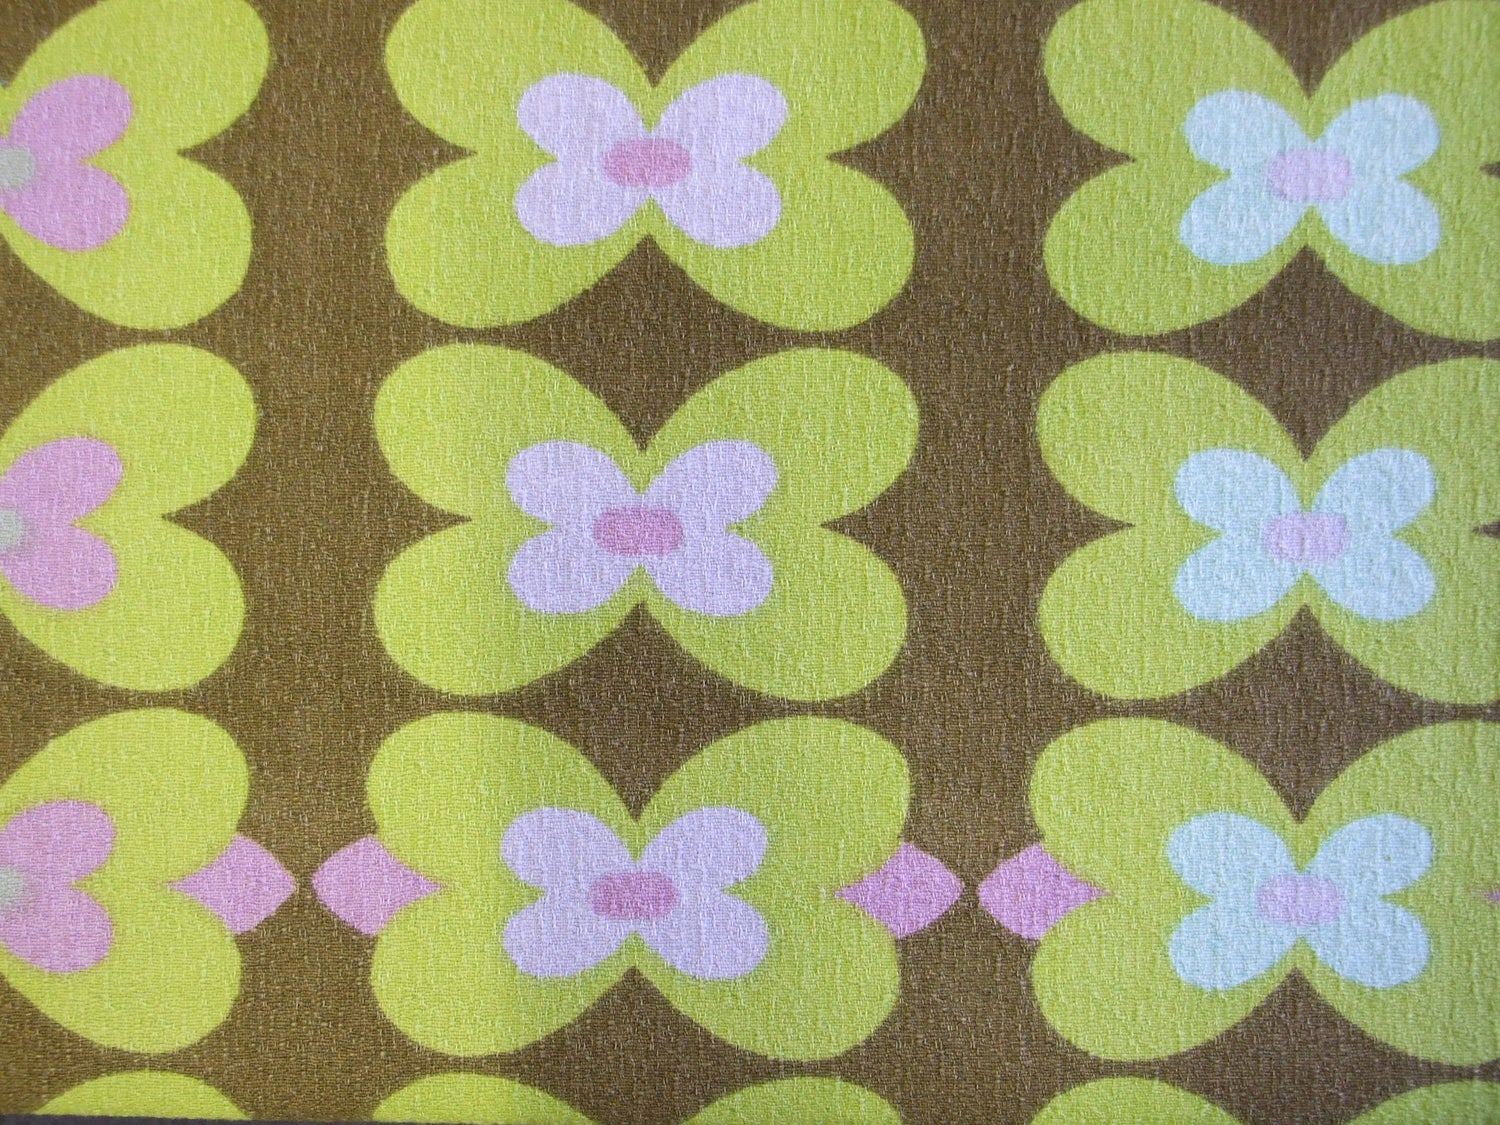 Image of Heals 'Summer Glory' vintage fabric